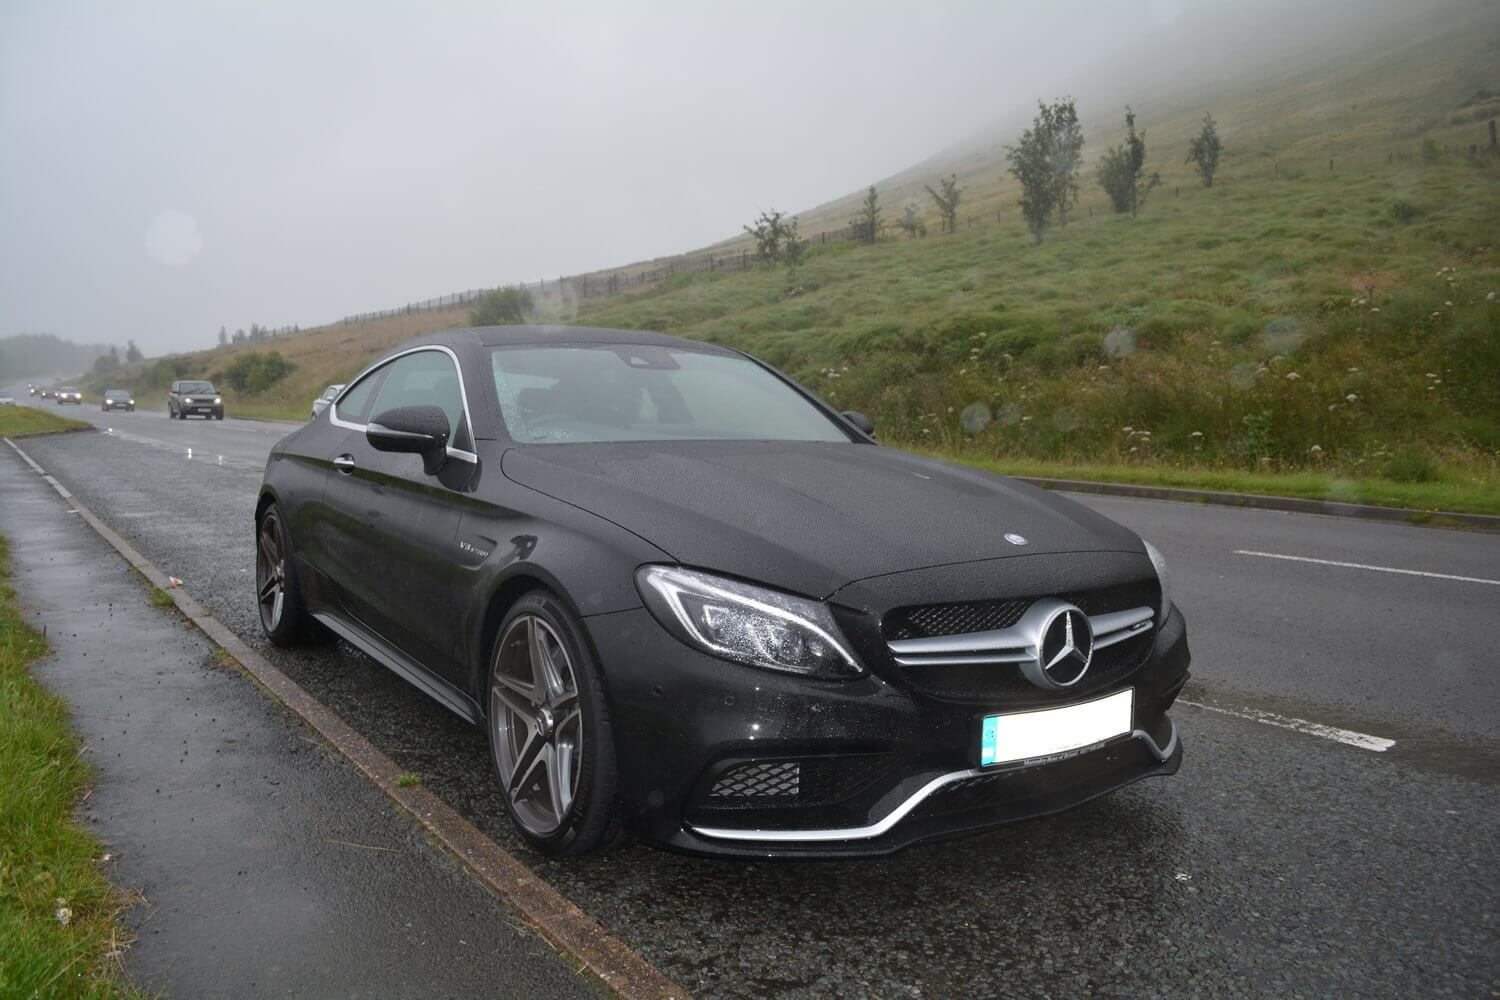 the all new mercedes c63 amg w205 coupe review mercedes enthusiasts. Black Bedroom Furniture Sets. Home Design Ideas